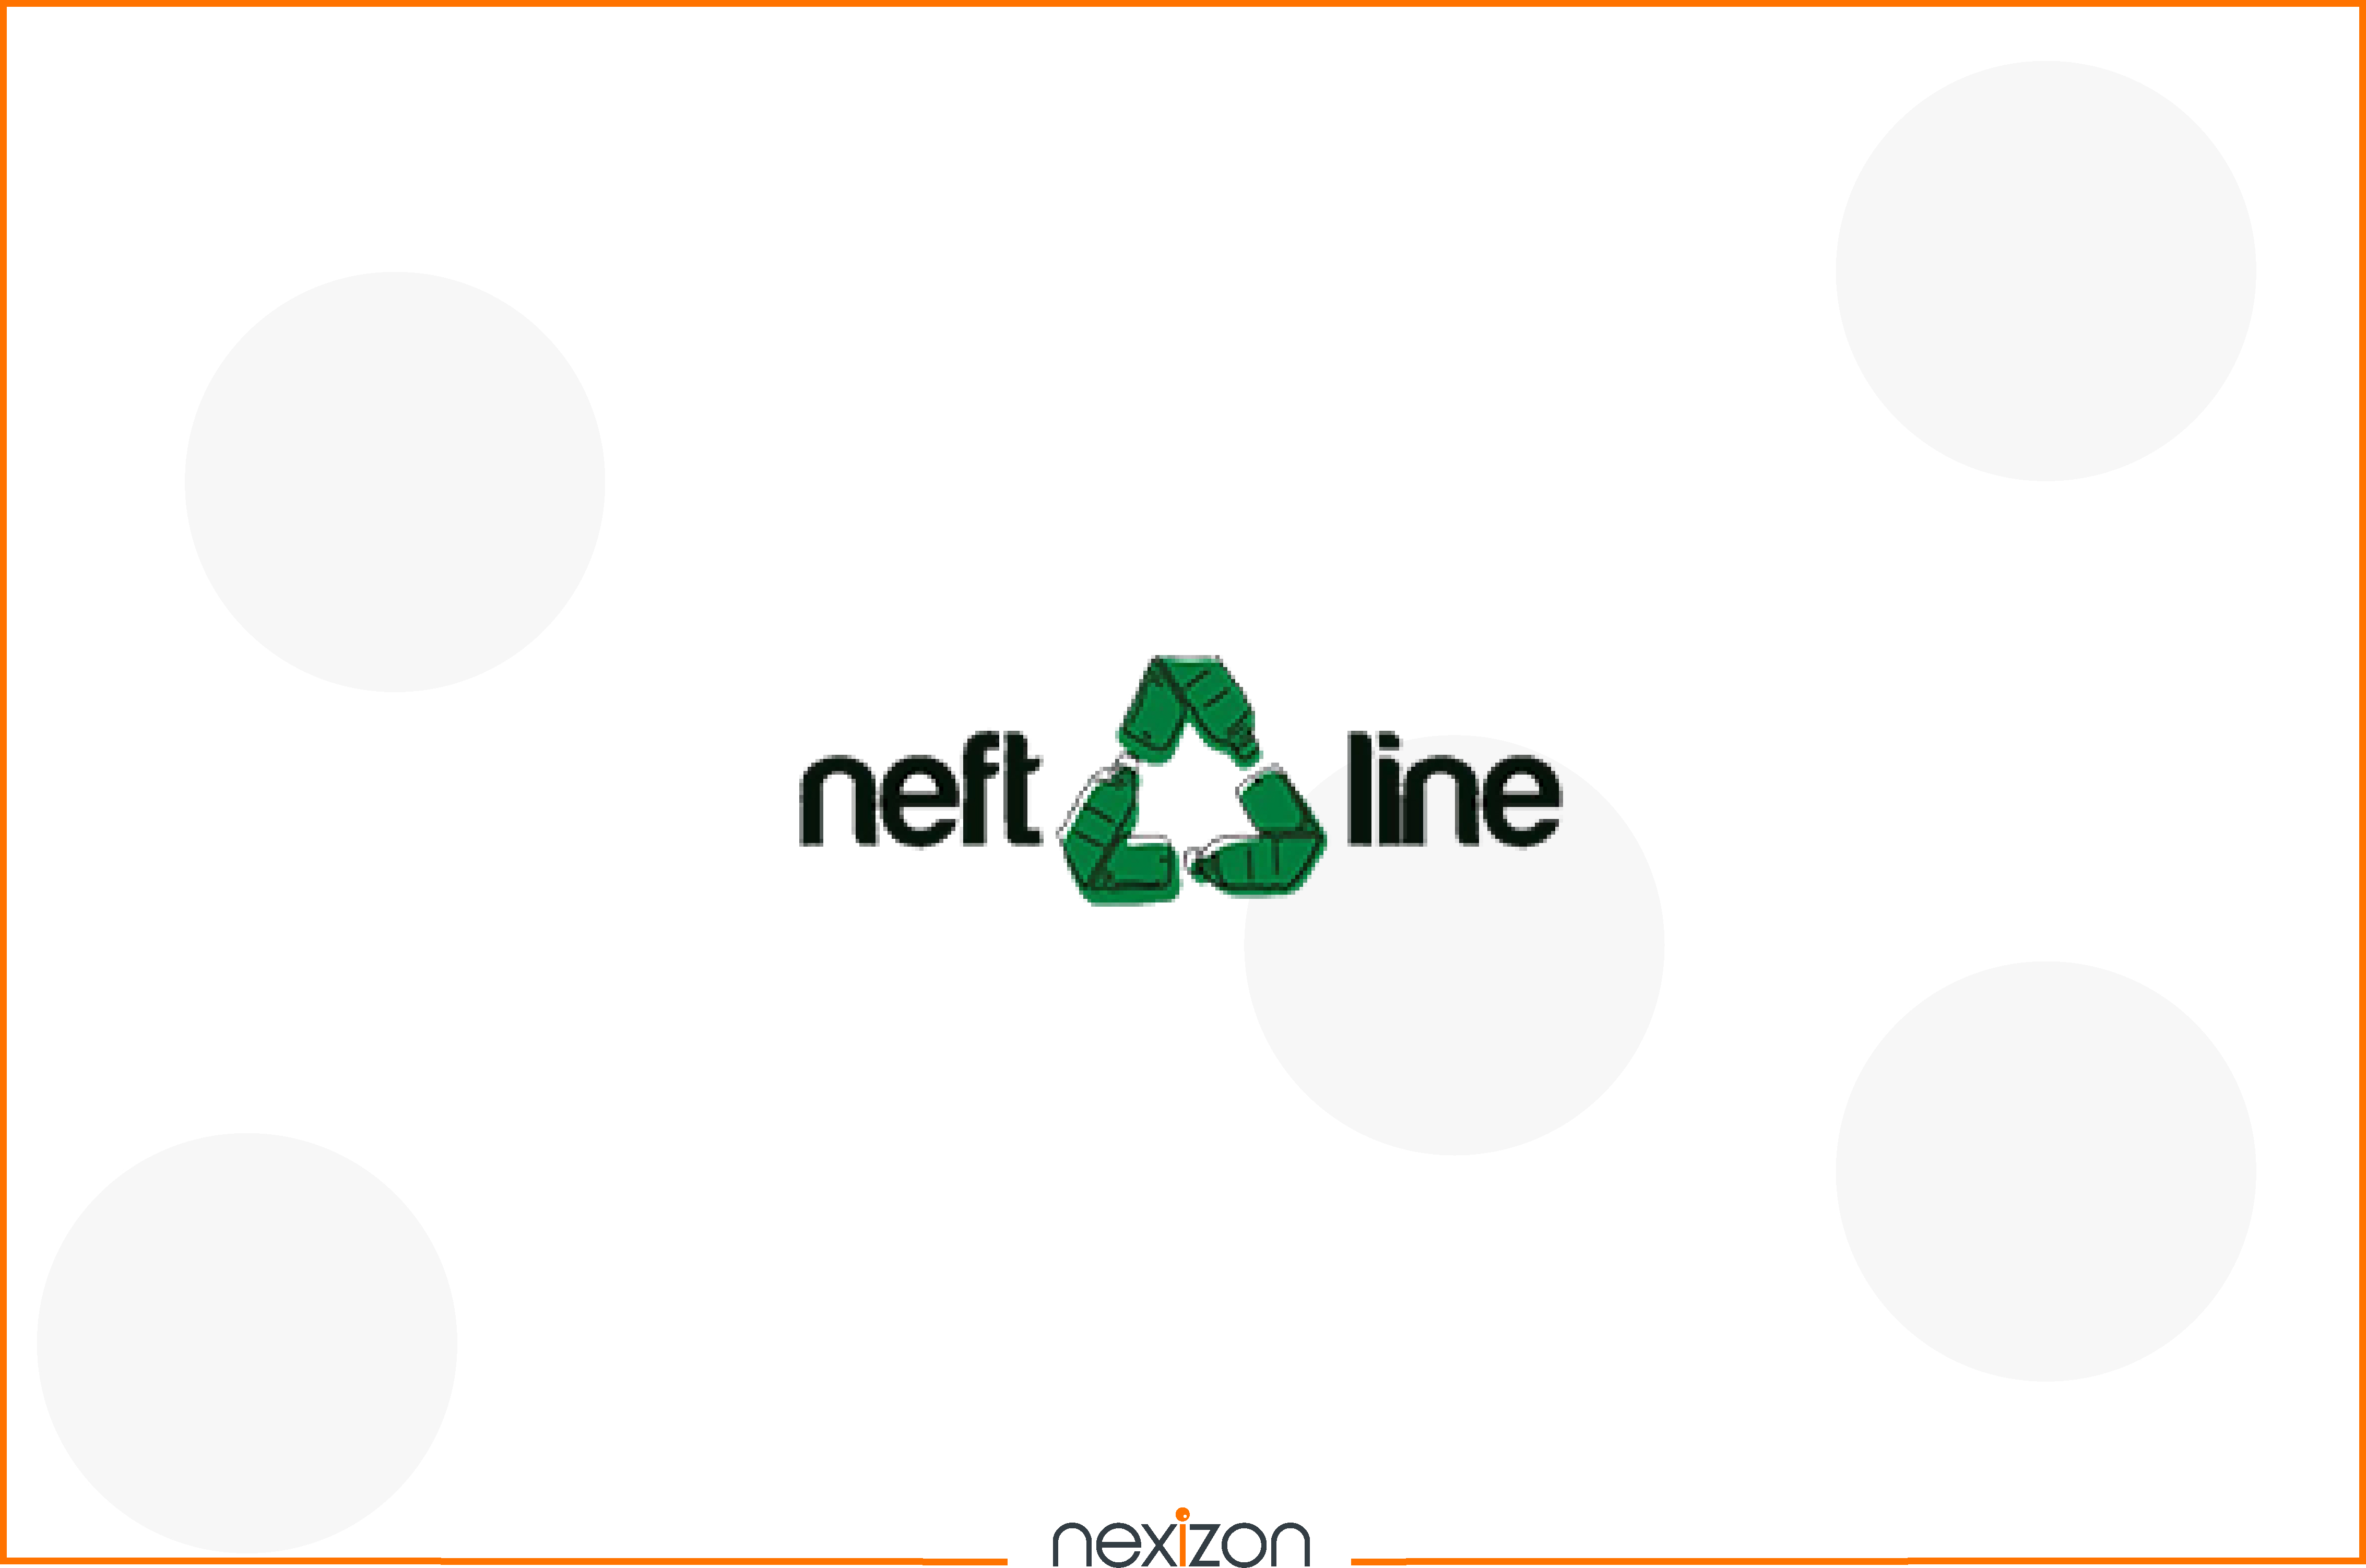 Neftline preferred nexizon for worker productivity and workplace security solutions.